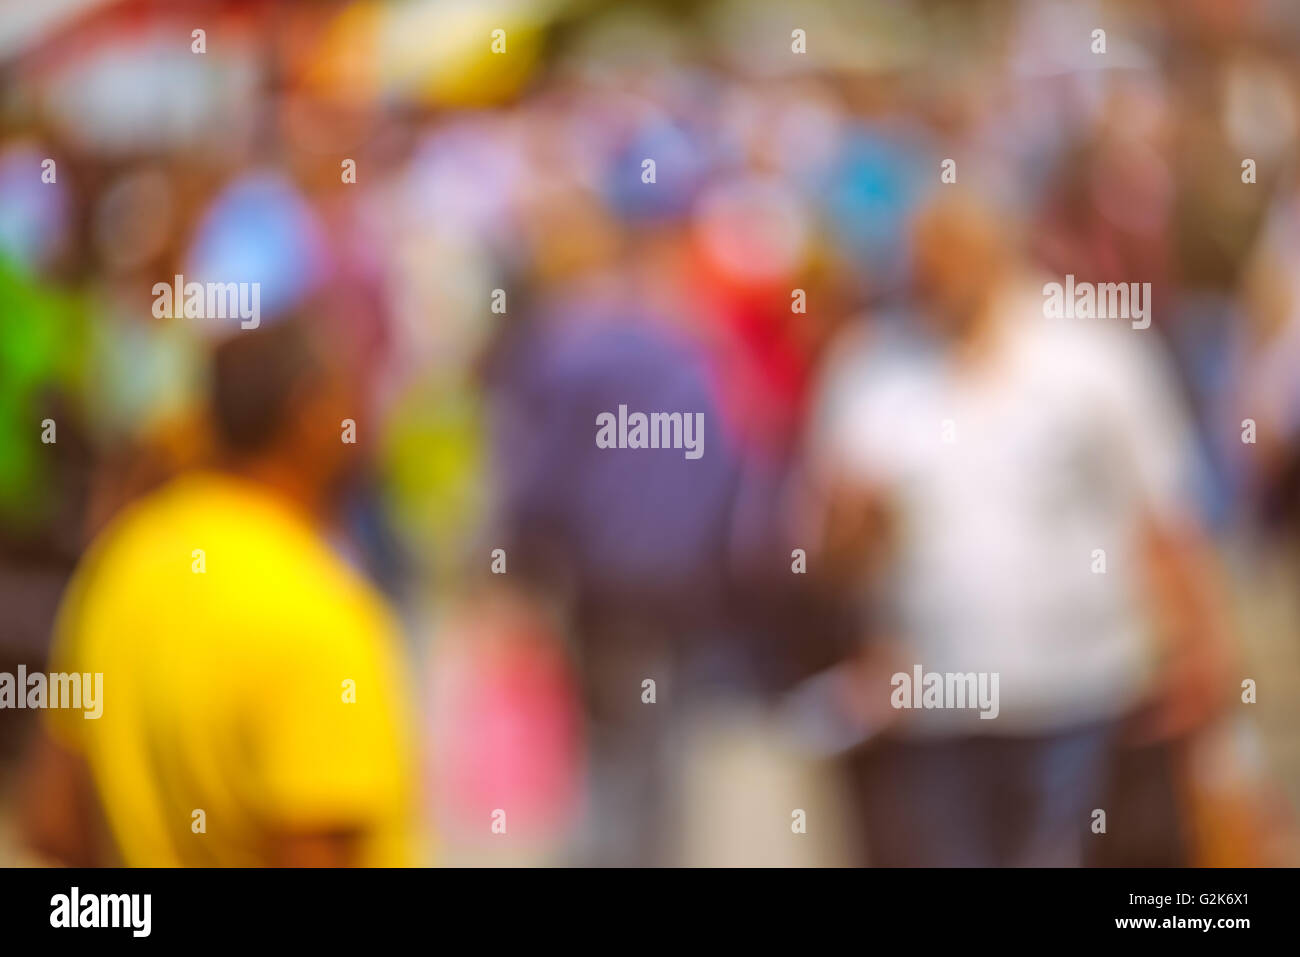 Street crowd out of focus, unrecognizable everyday ordinary men and women as blur urban background. - Stock Image